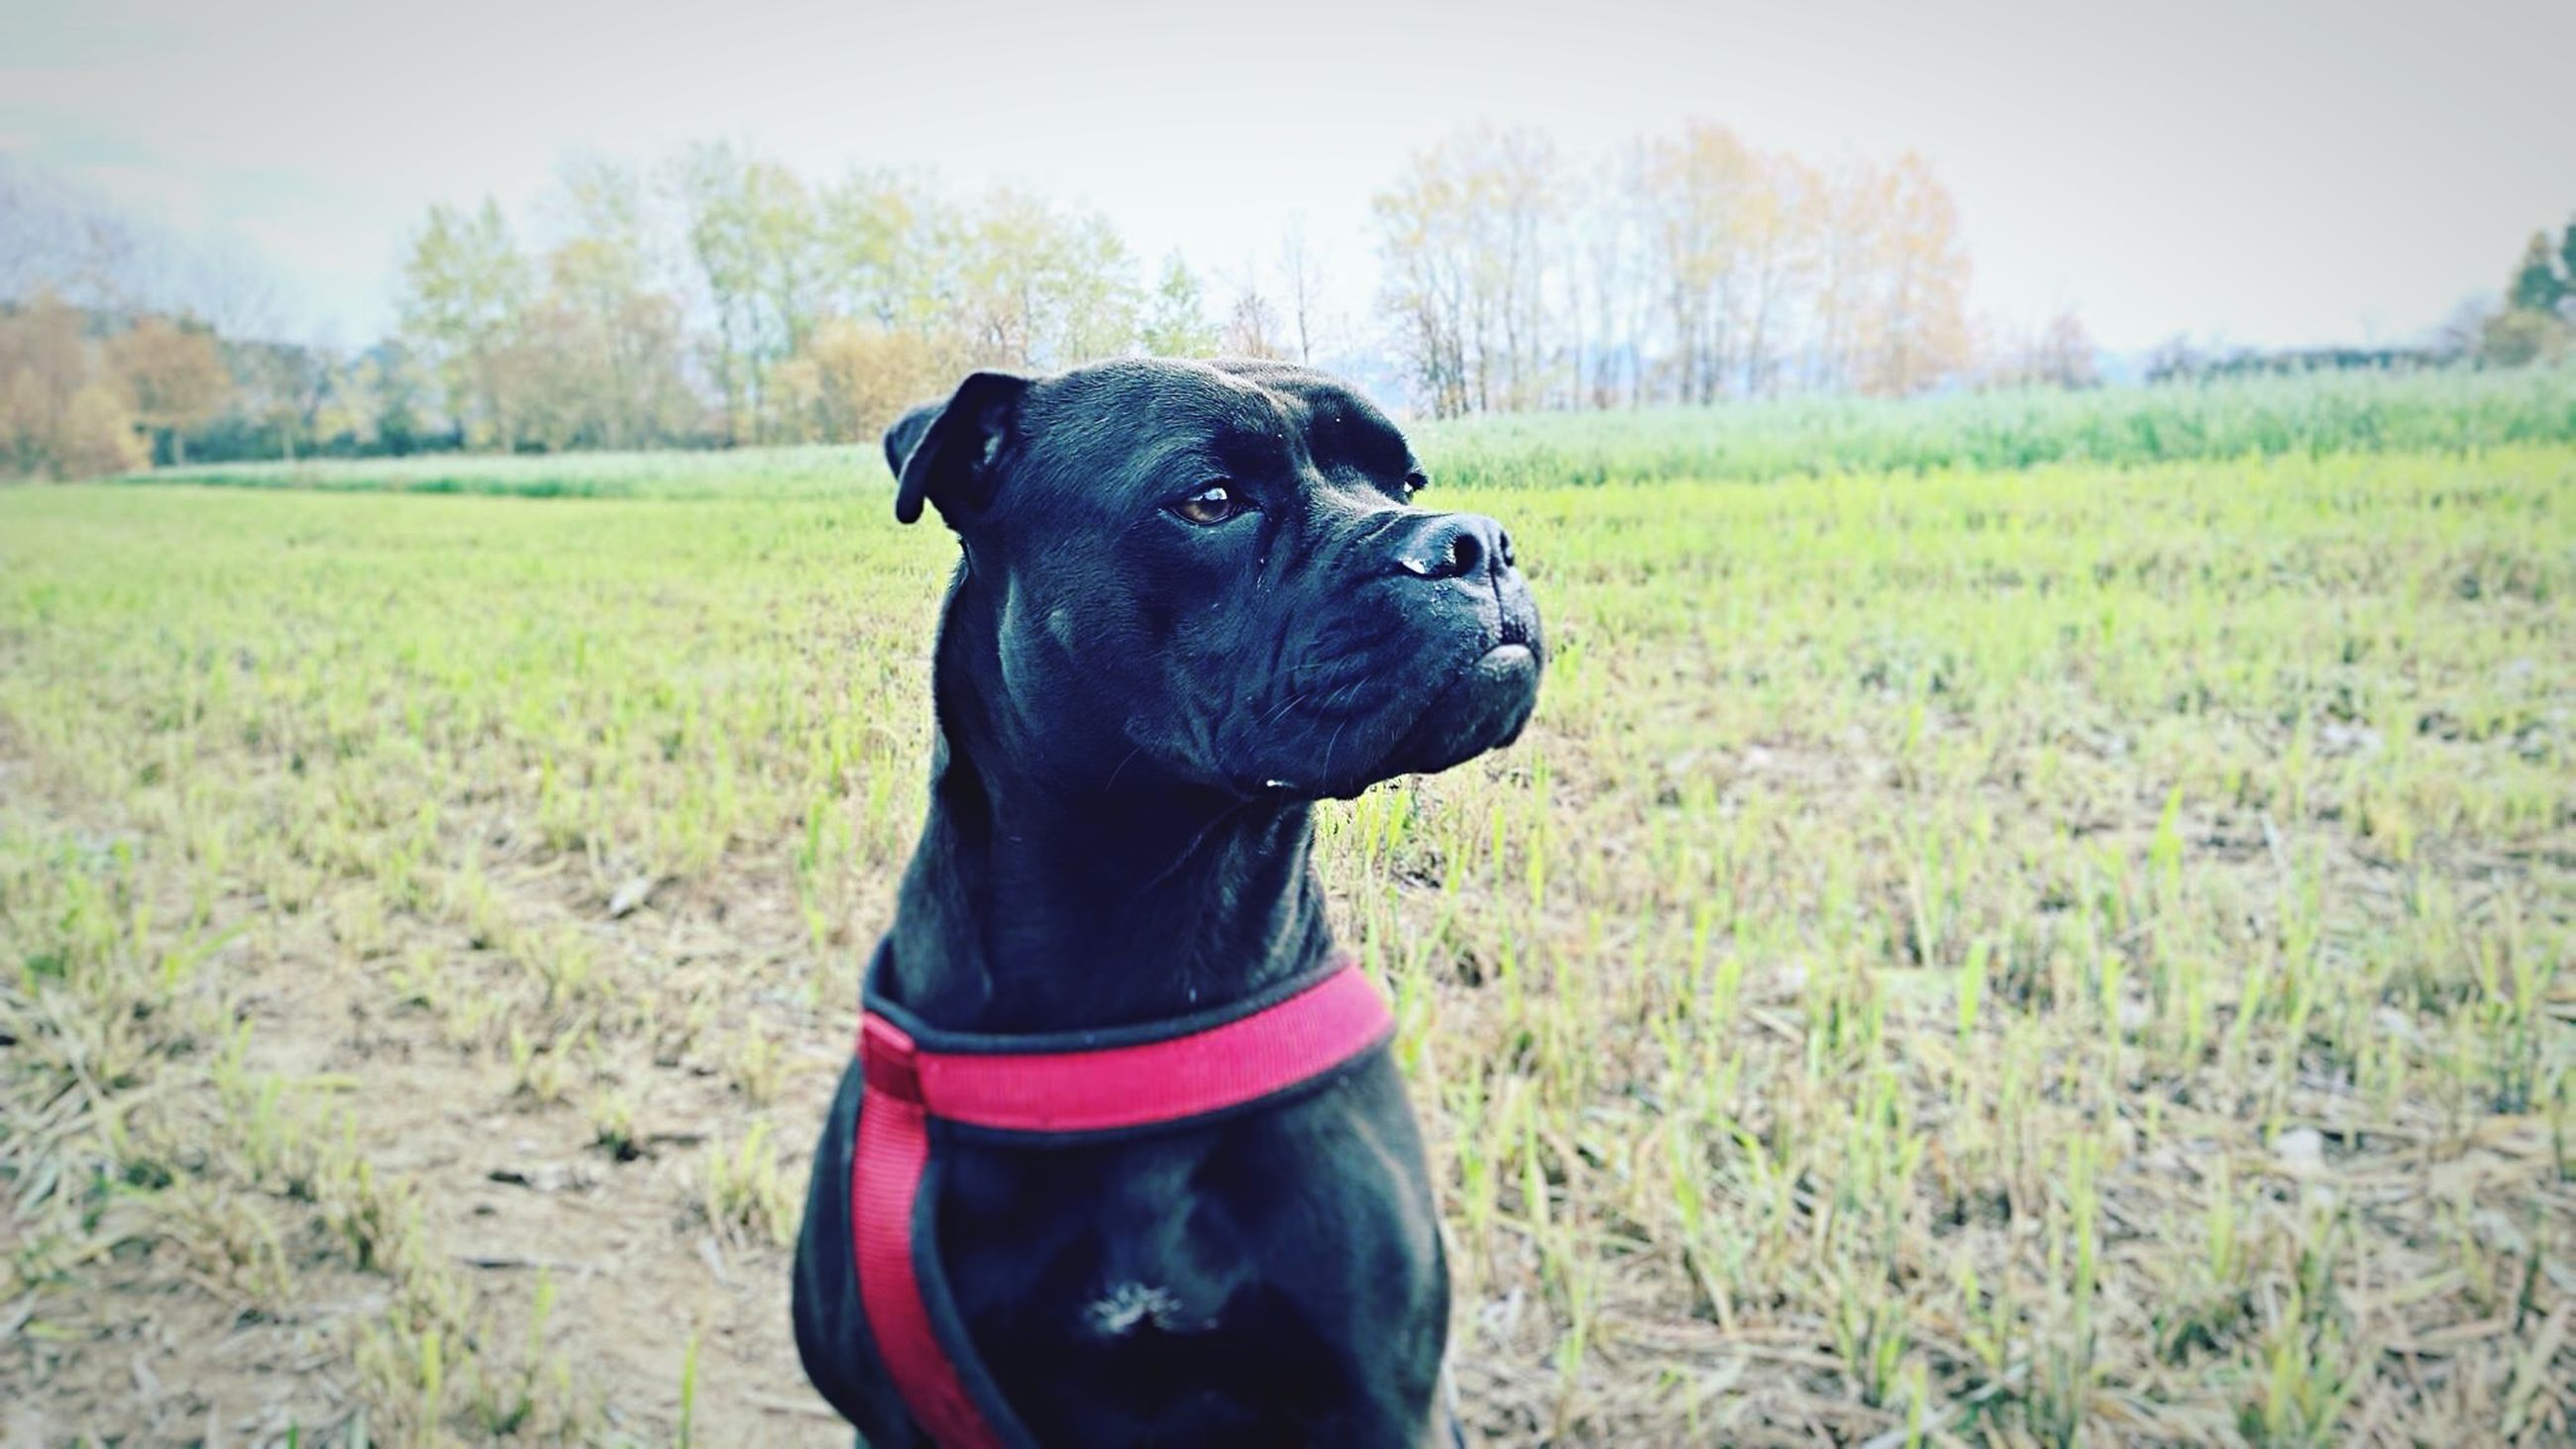 grass, dog, domestic animals, field, pets, one animal, animal themes, mammal, grassy, black color, landscape, standing, focus on foreground, looking at camera, portrait, nature, day, outdoors